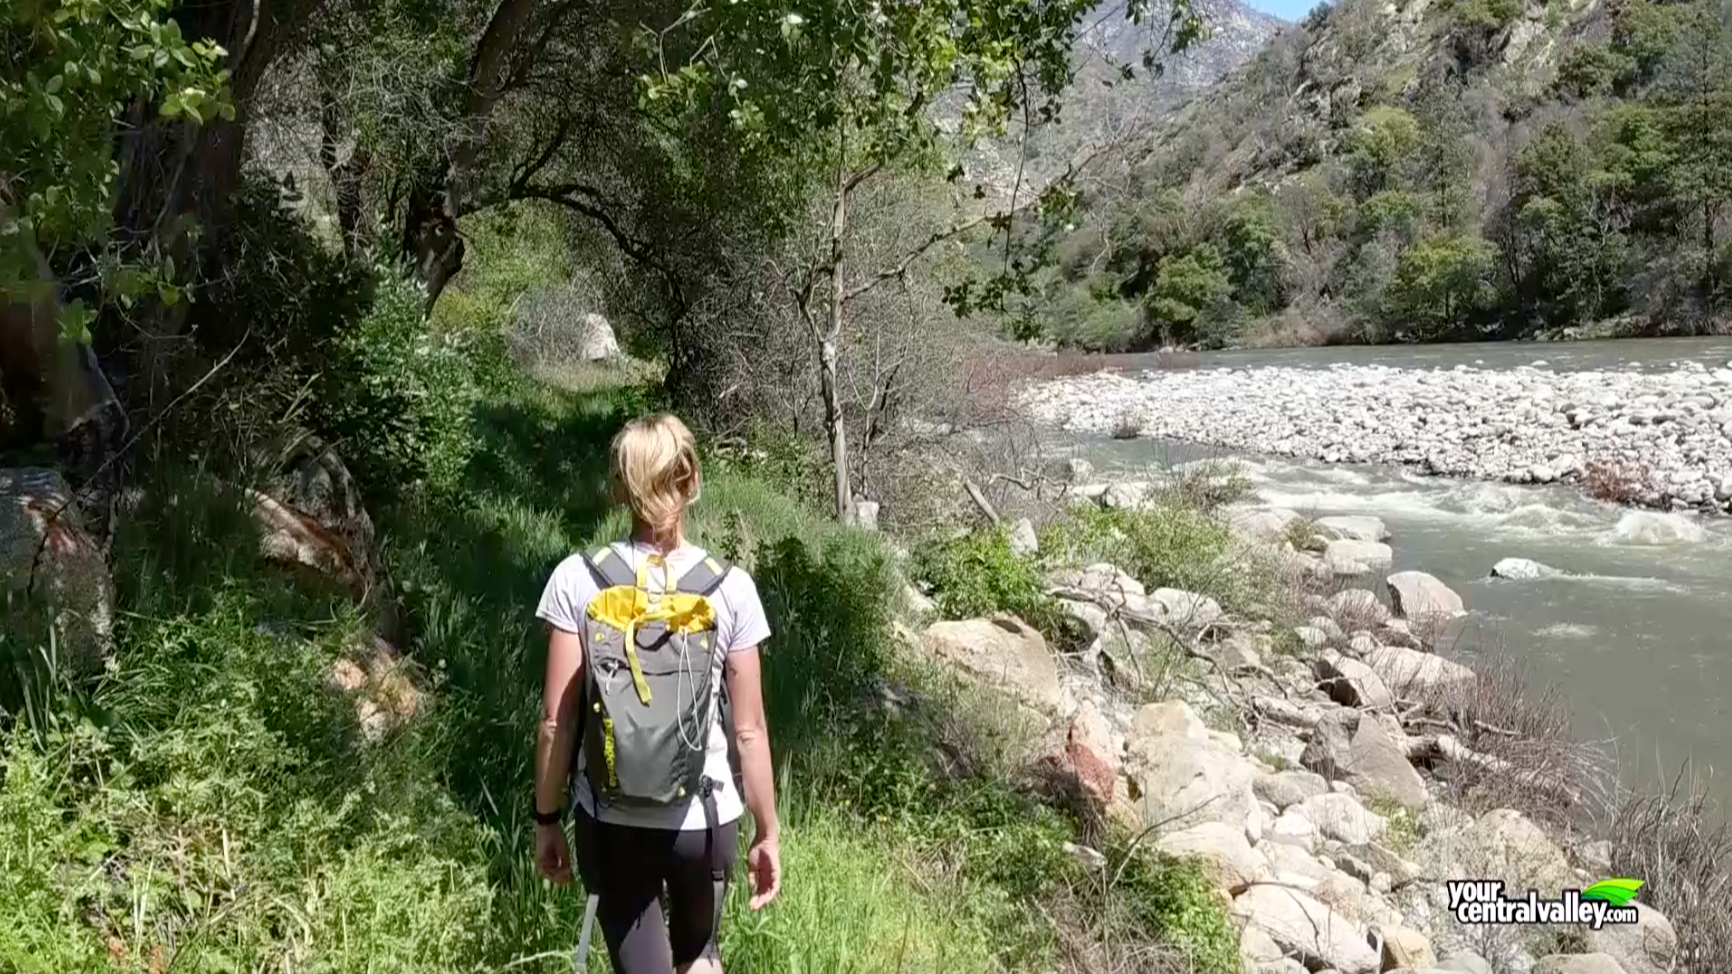 On the Trail VR/360°: Kings River Trail